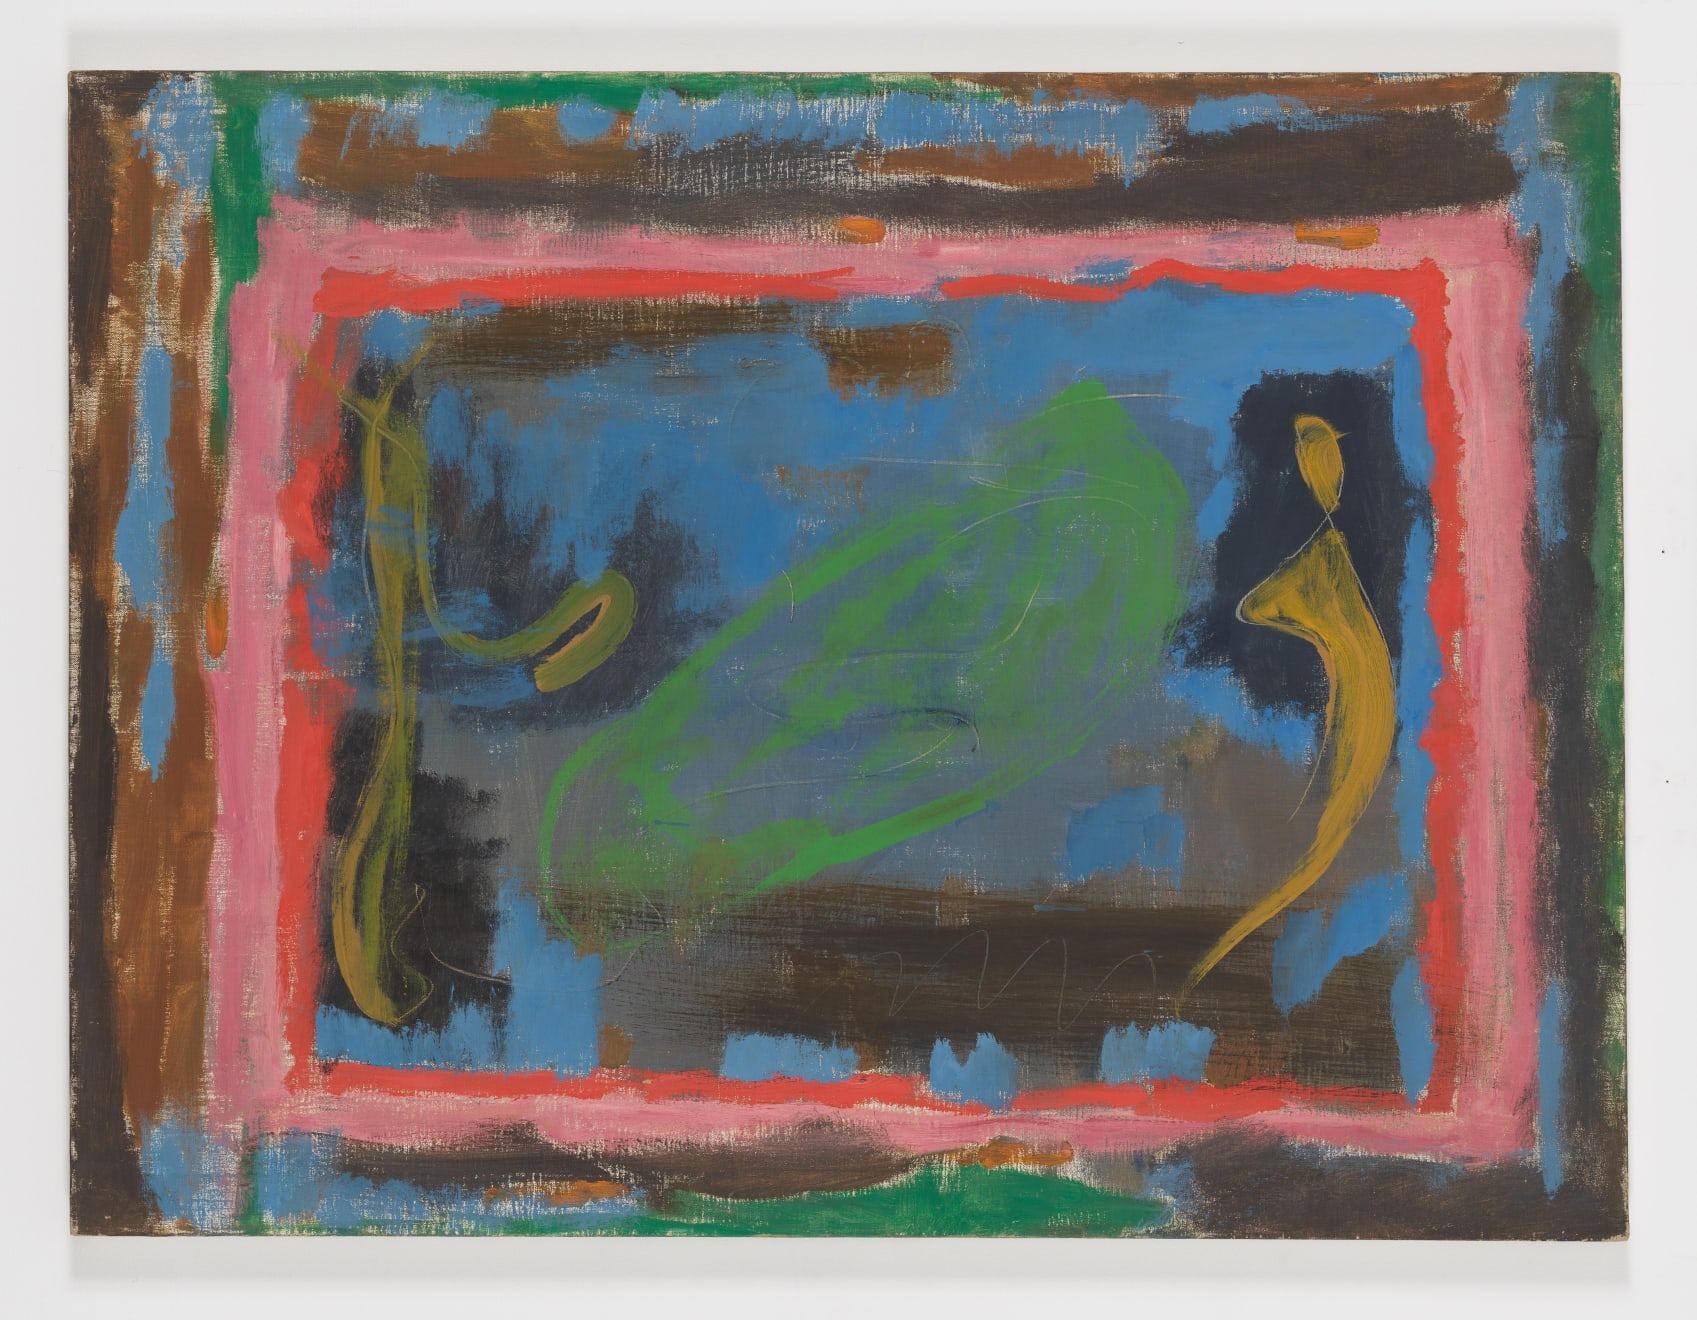 Betty Parsons Untitled, 1956 Acrylic on linen 30h x 40w in (76.20h x 101.60w cm)